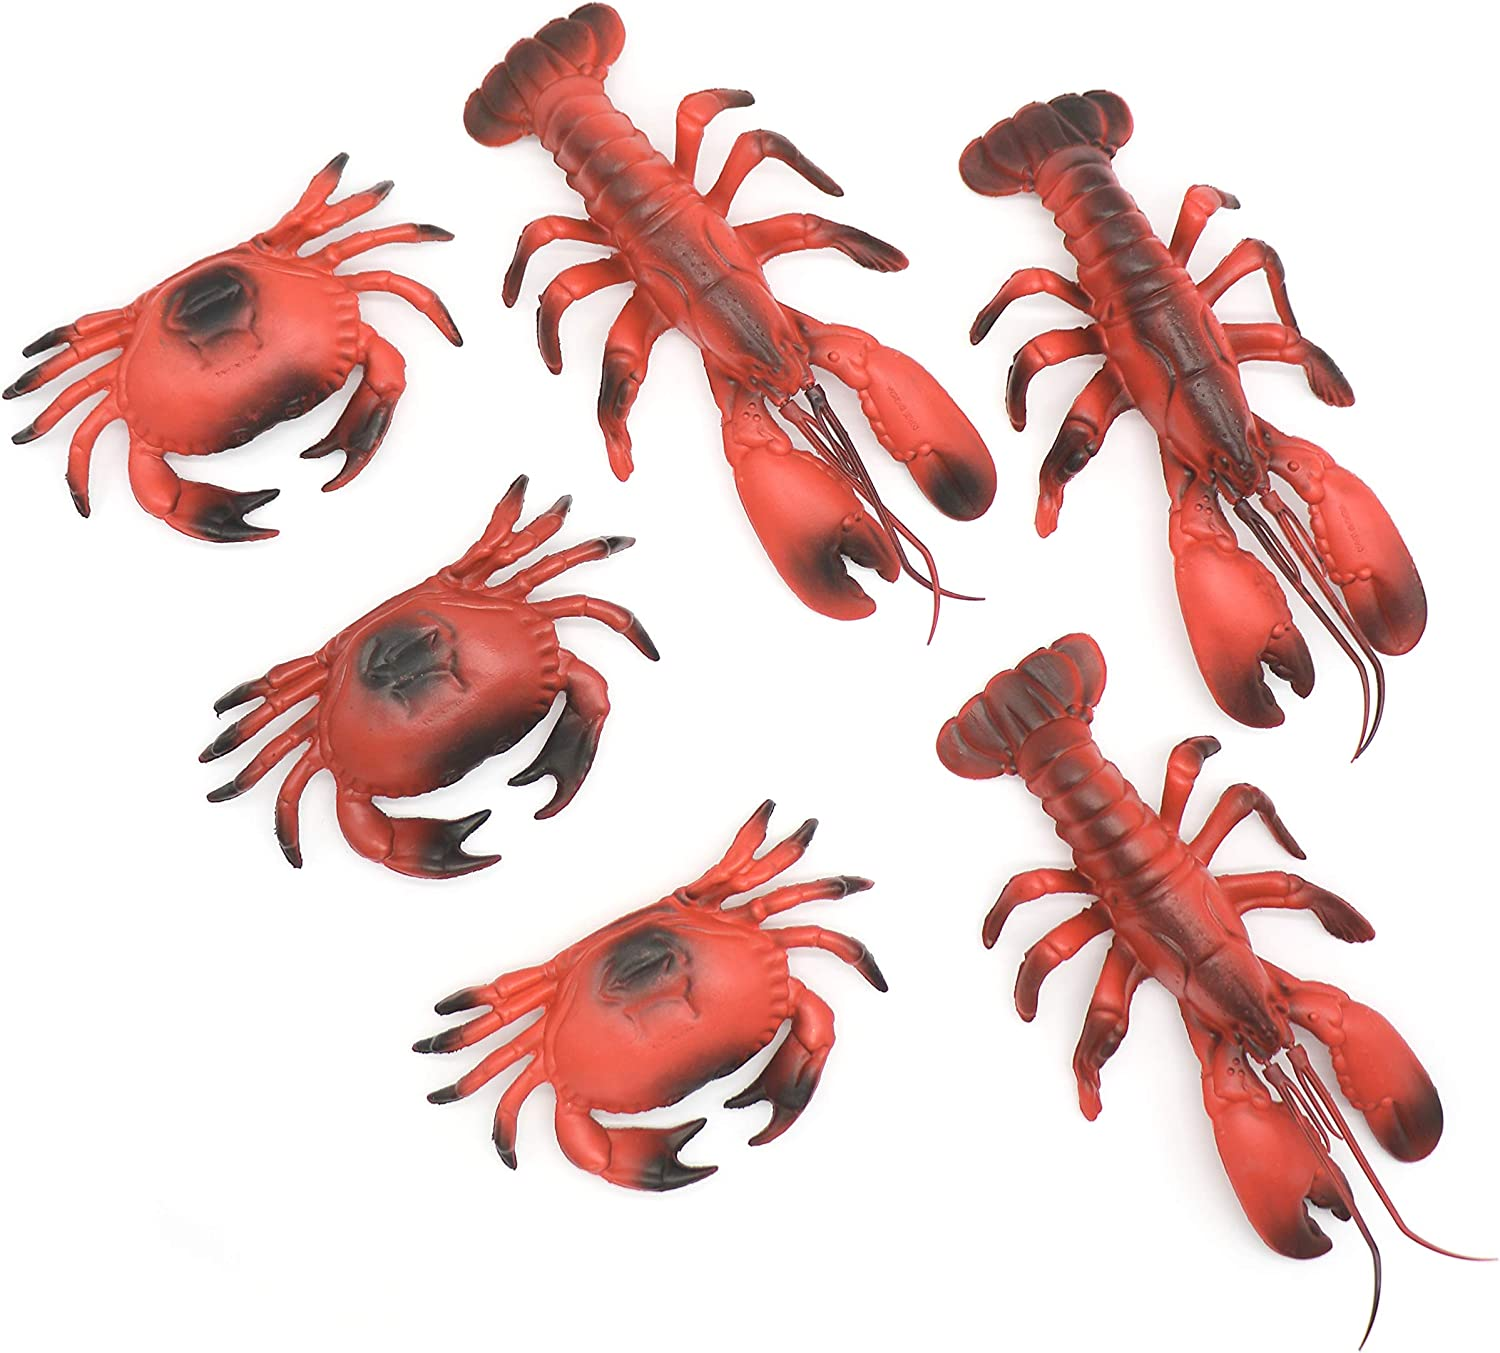 Lobster and Crab Nautical Decor Beach Decorations for Home | Beach Party Decorations 6 piece set